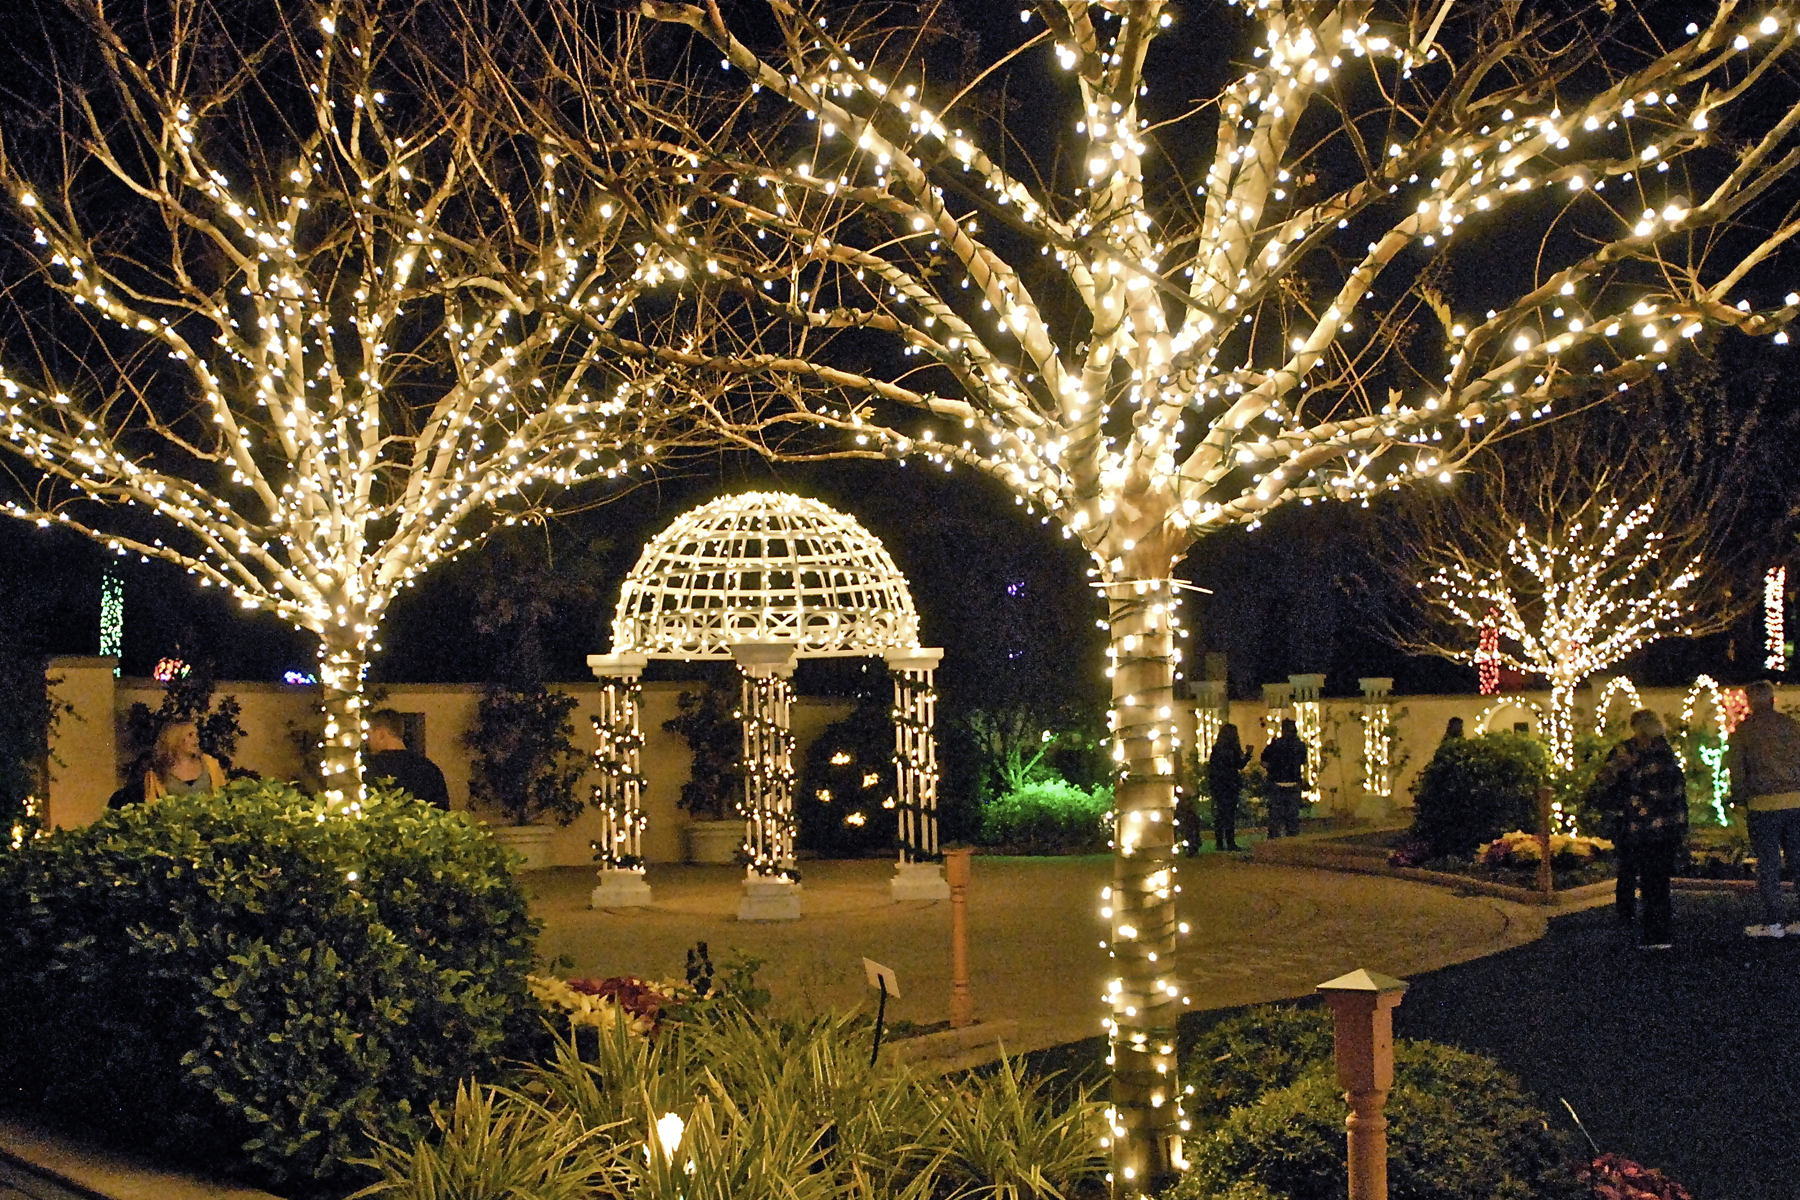 Paradise News Magazine Holiday Lights In The GardenChristmas Lights Garden  #3